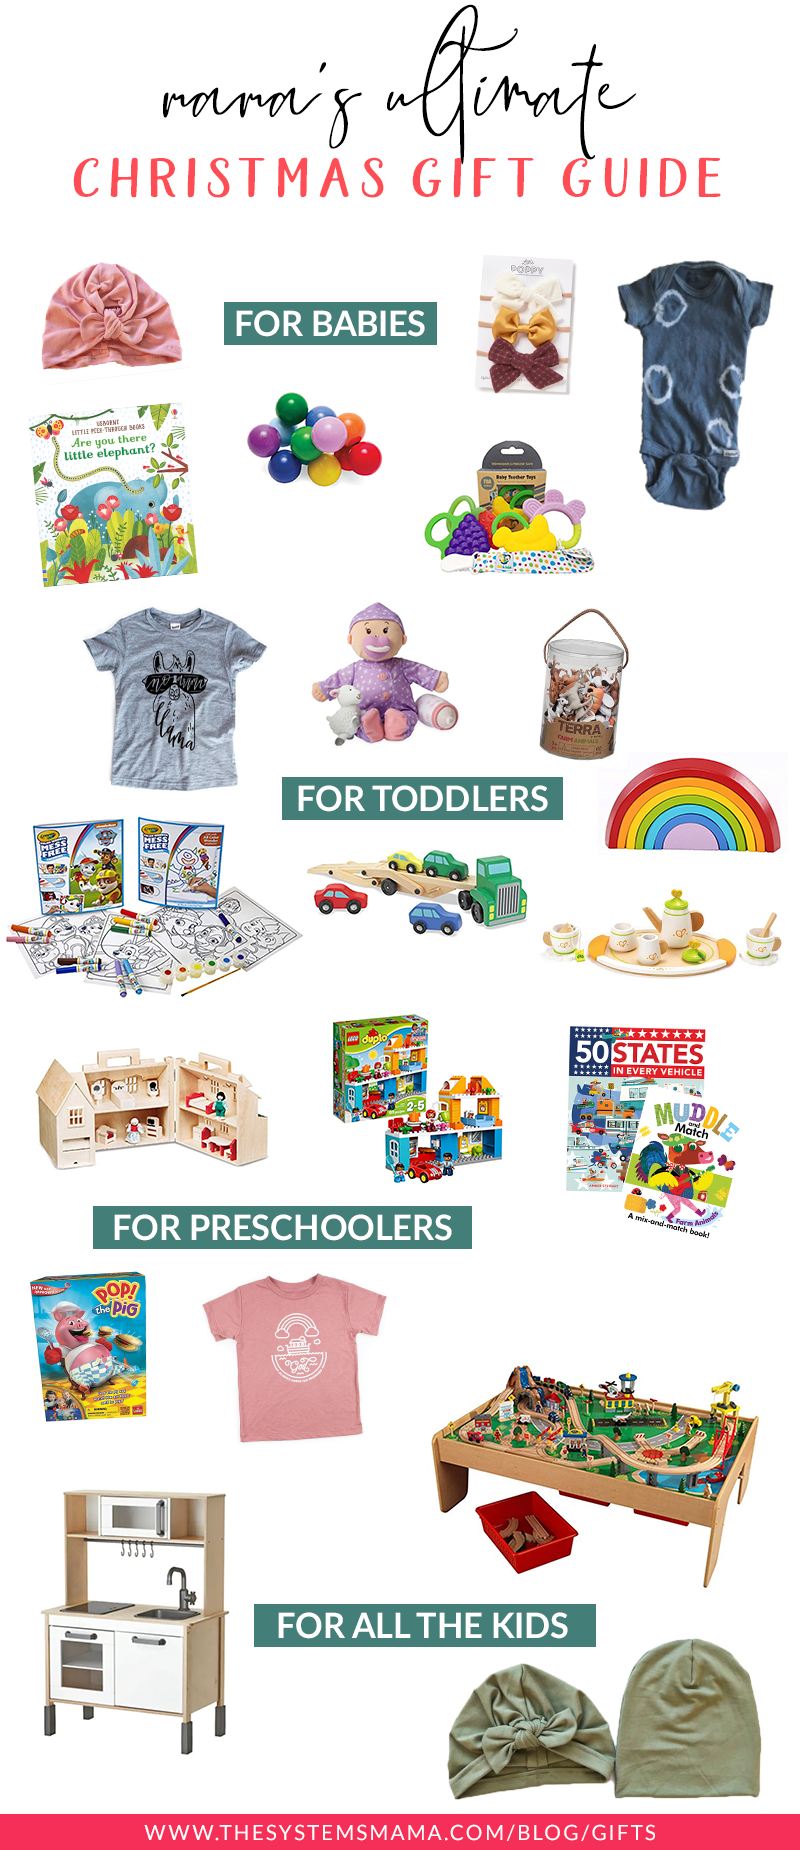 Christmas gift ideas for all the kids! #giftideas #giftguide #christmas #babygifts #toddlergifts